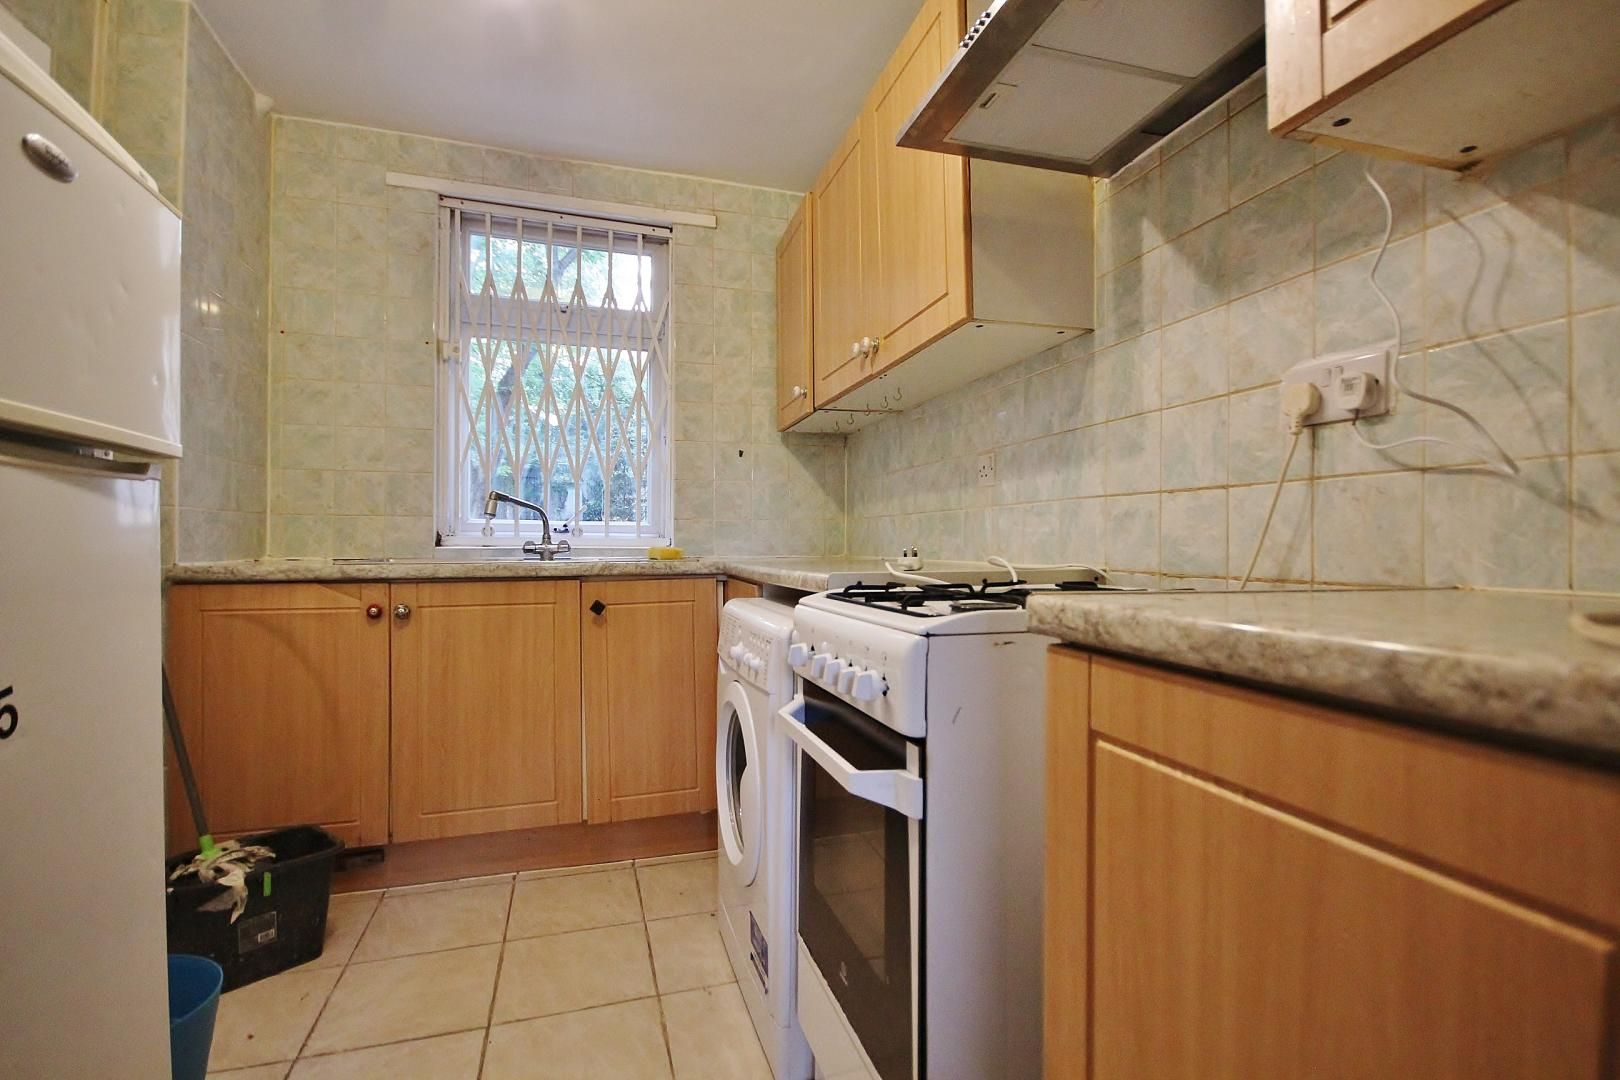 4 bed house to rent in Rounton Road - Property Image 1